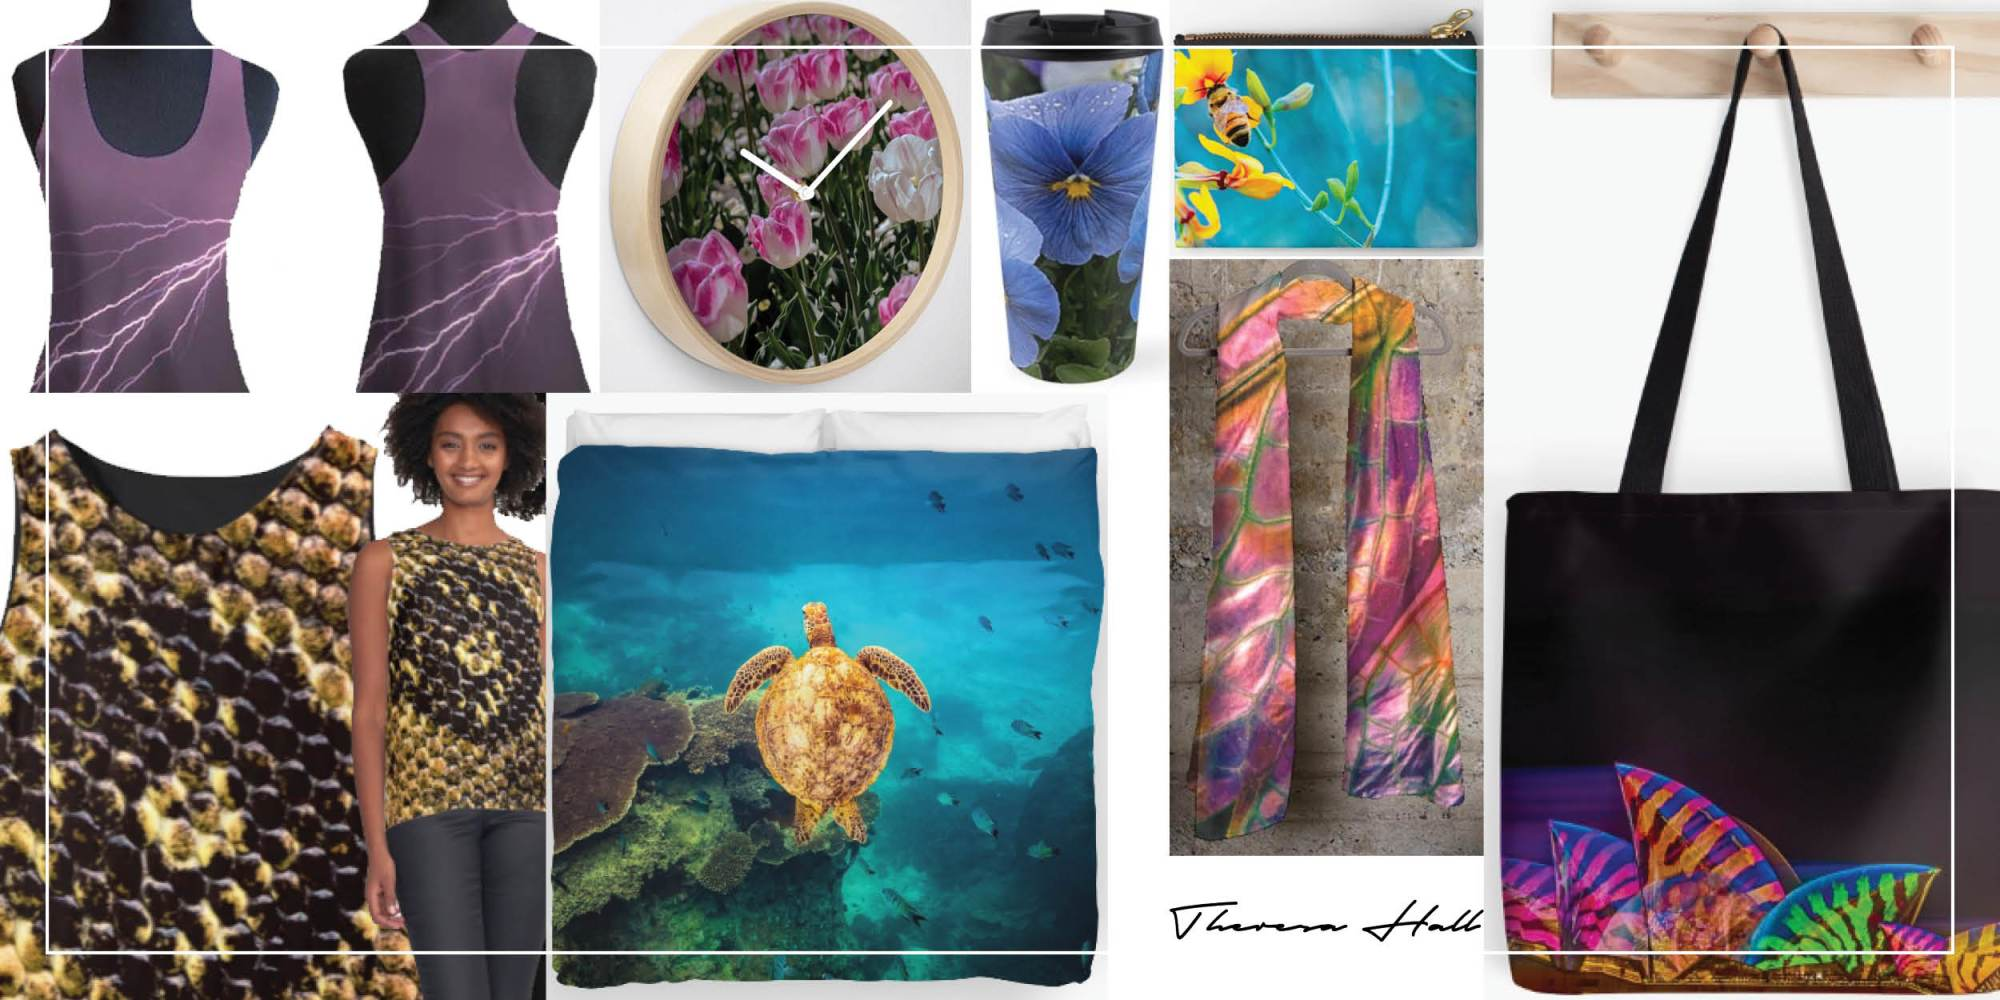 Various images for Teniche designs: tops, doona covers, clock, travel mug, wallet, scarf, bag.